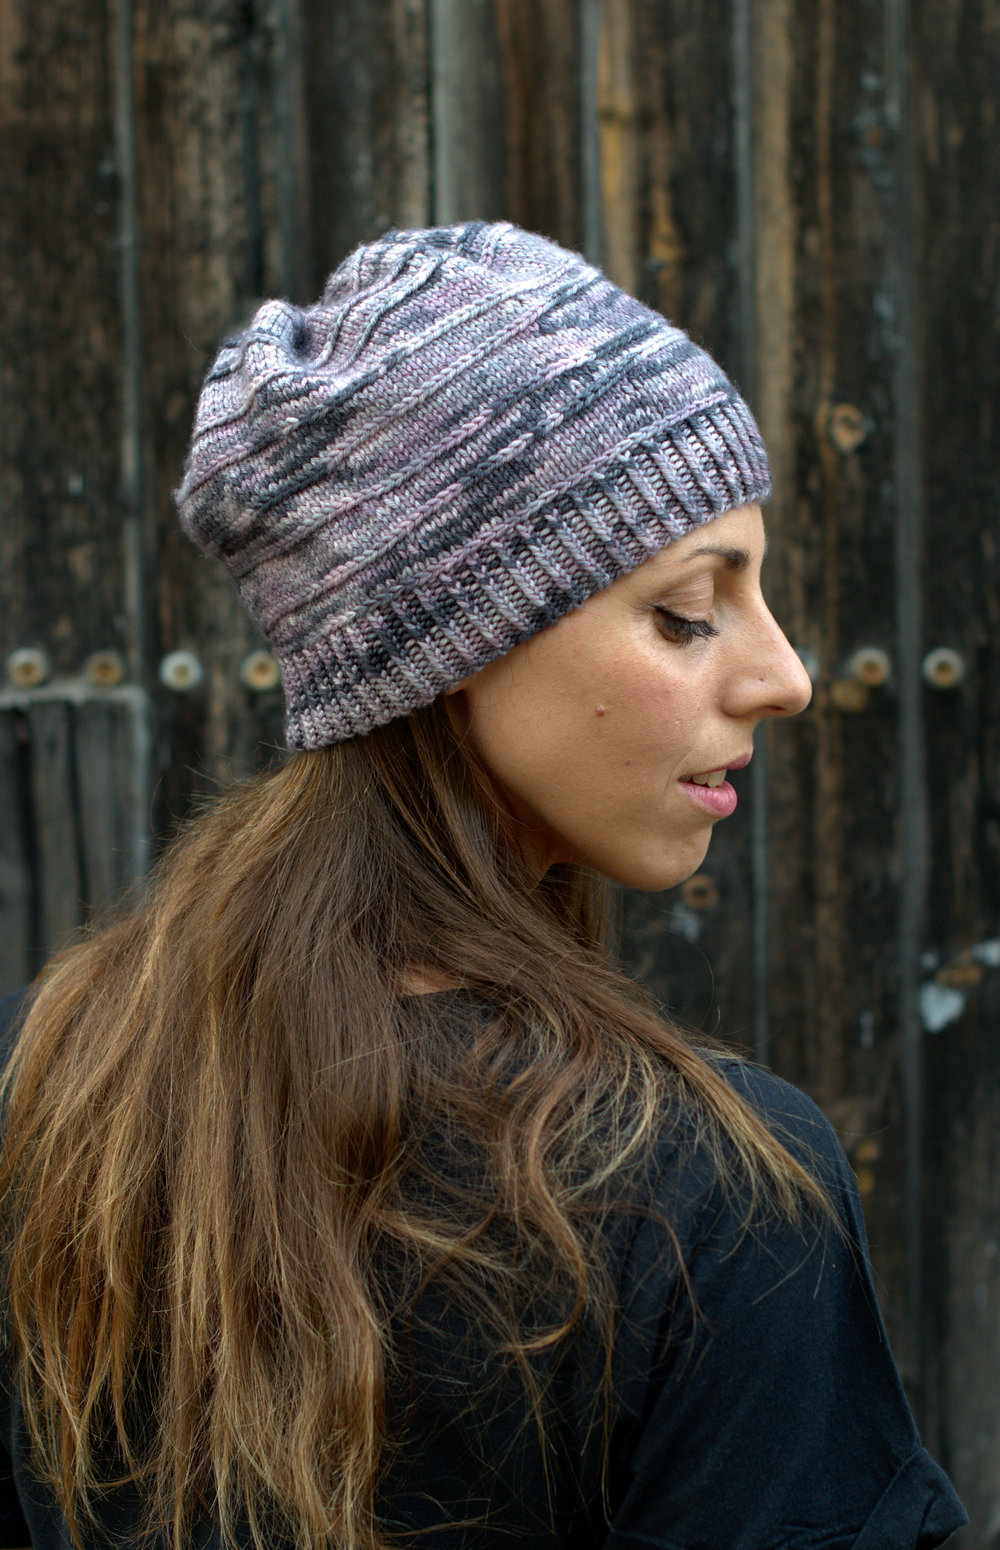 Contoura hand knitting pattern for slouchy beanie Hat featuring short rows